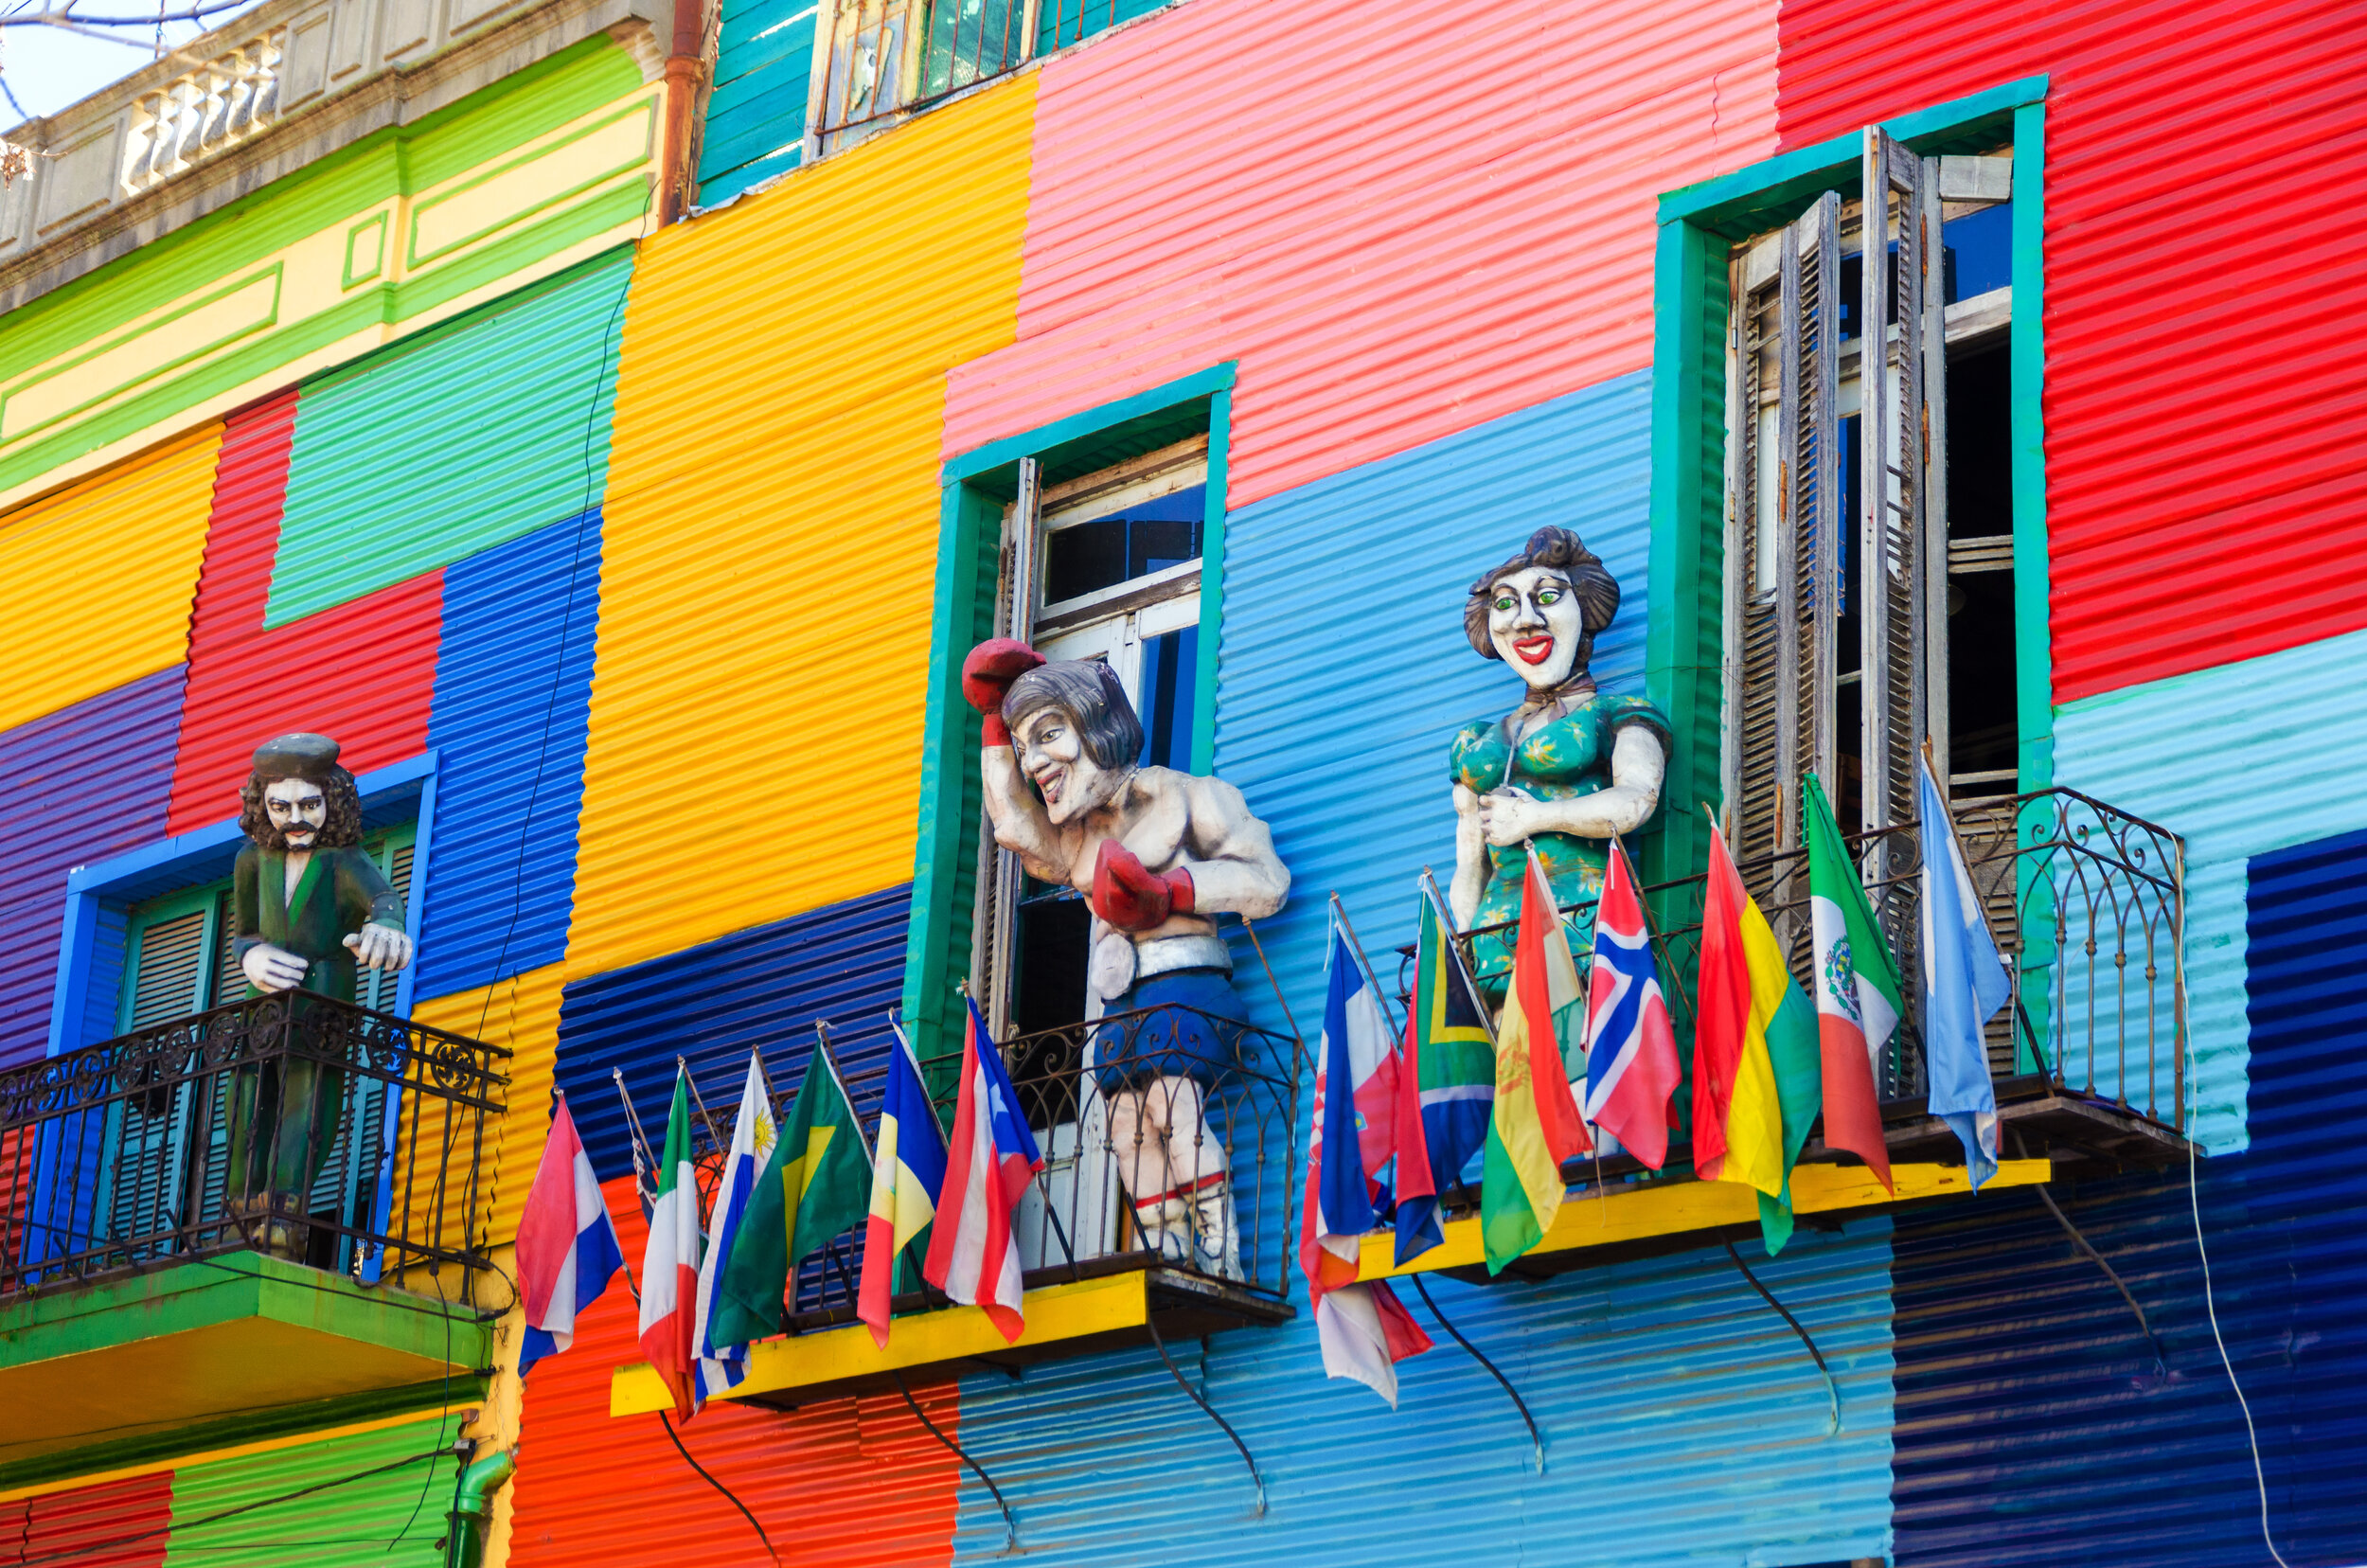 A colorful building in La Boca neighborhood of Buenos Aires with statues and flags.jpg